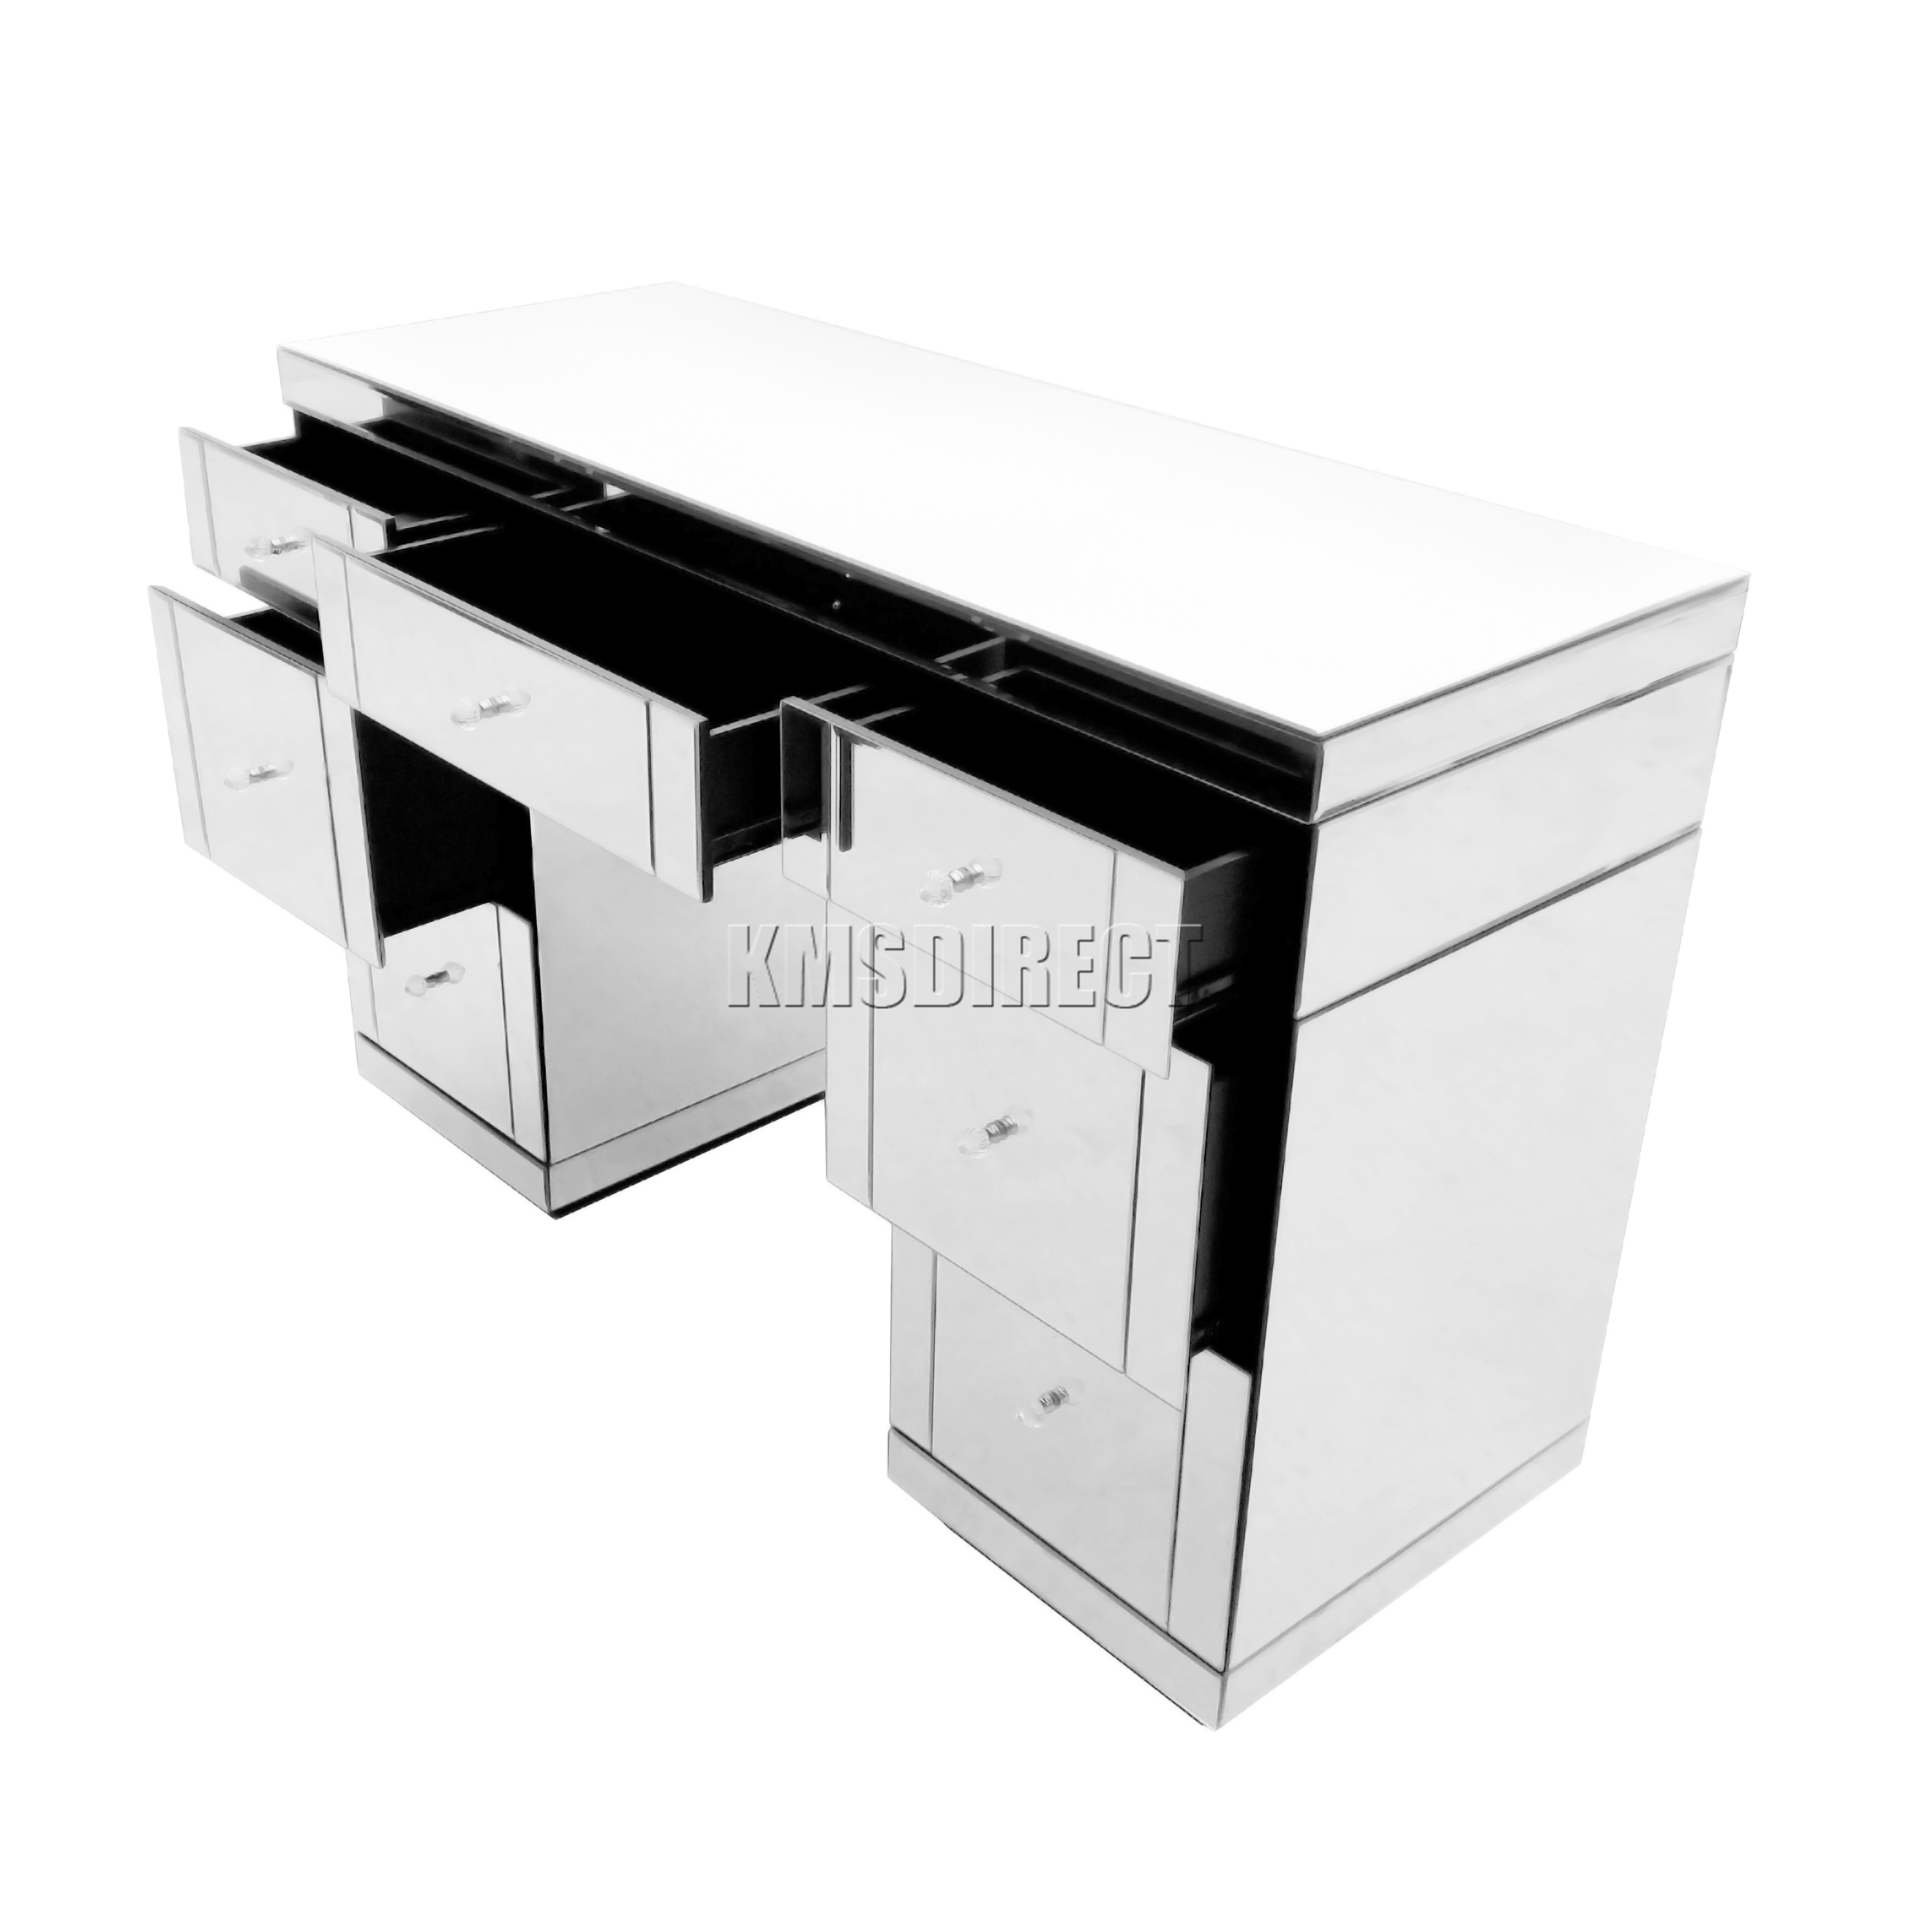 Mirrored Furniture Foxhunter Mirrored Furniture Glass 7 Drawer Dressing Table Console